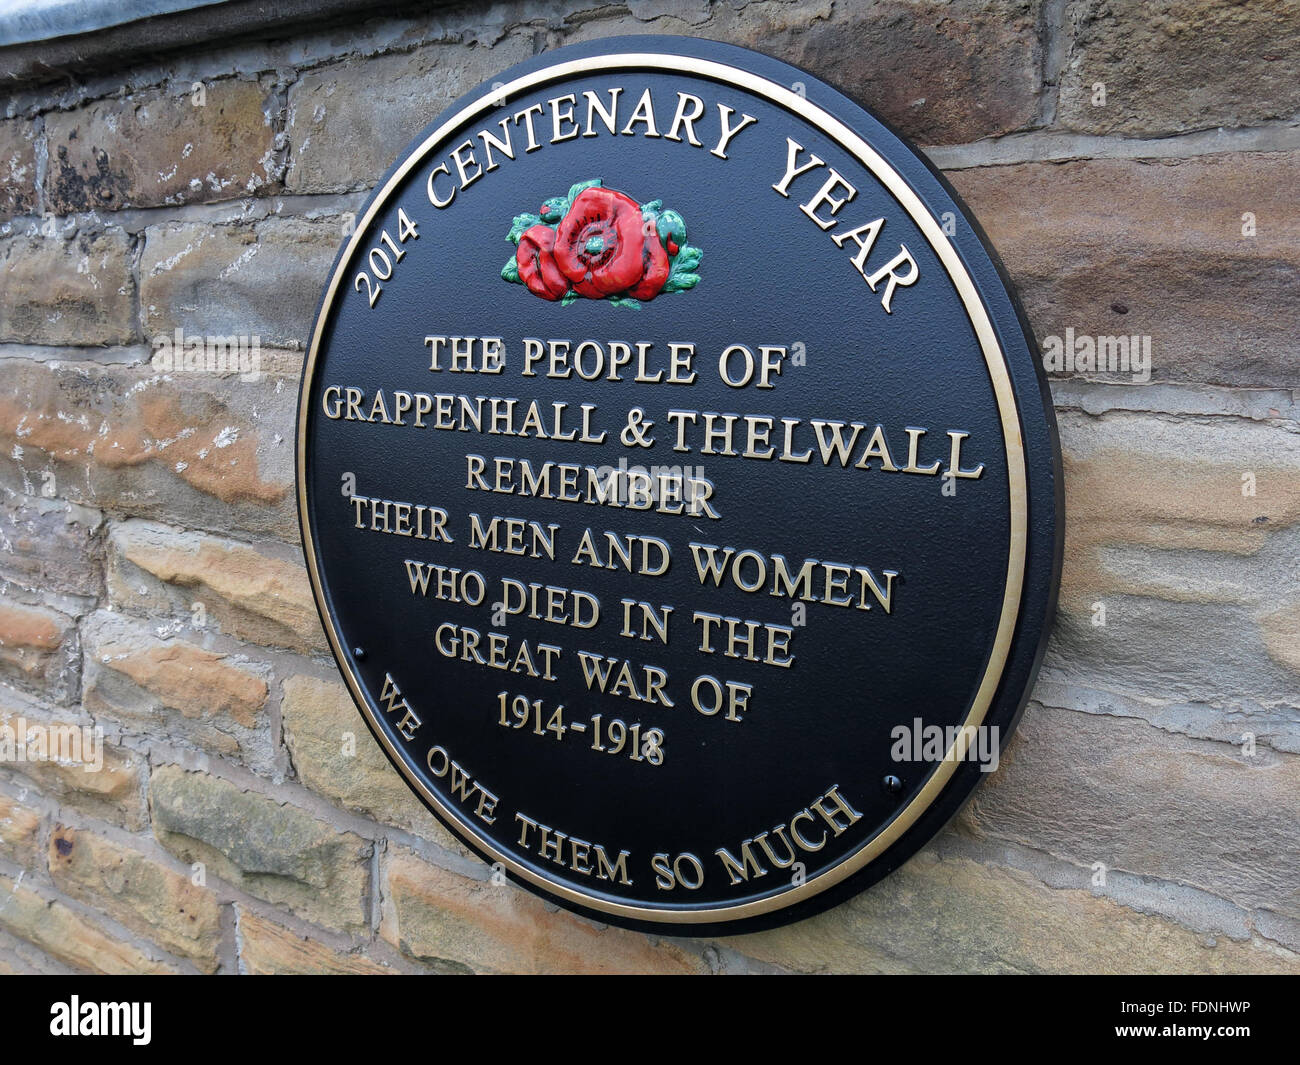 Great,War,1914-1918,Cheshire,England,UK,1914,1918,people,remember,men,women,who,died,we,owe,them,so,much,black,wall,on,Methodist,Church,Knutsford,Rd,Road,2014 Centenary Year Plaque,Grappenhall & Thelwall,1914 Centenary Year Plaque,Great War,on a wall,GoTonySmith,@HotpixUK,Buy Pictures of,Buy Images Of,Images of,Stock Images